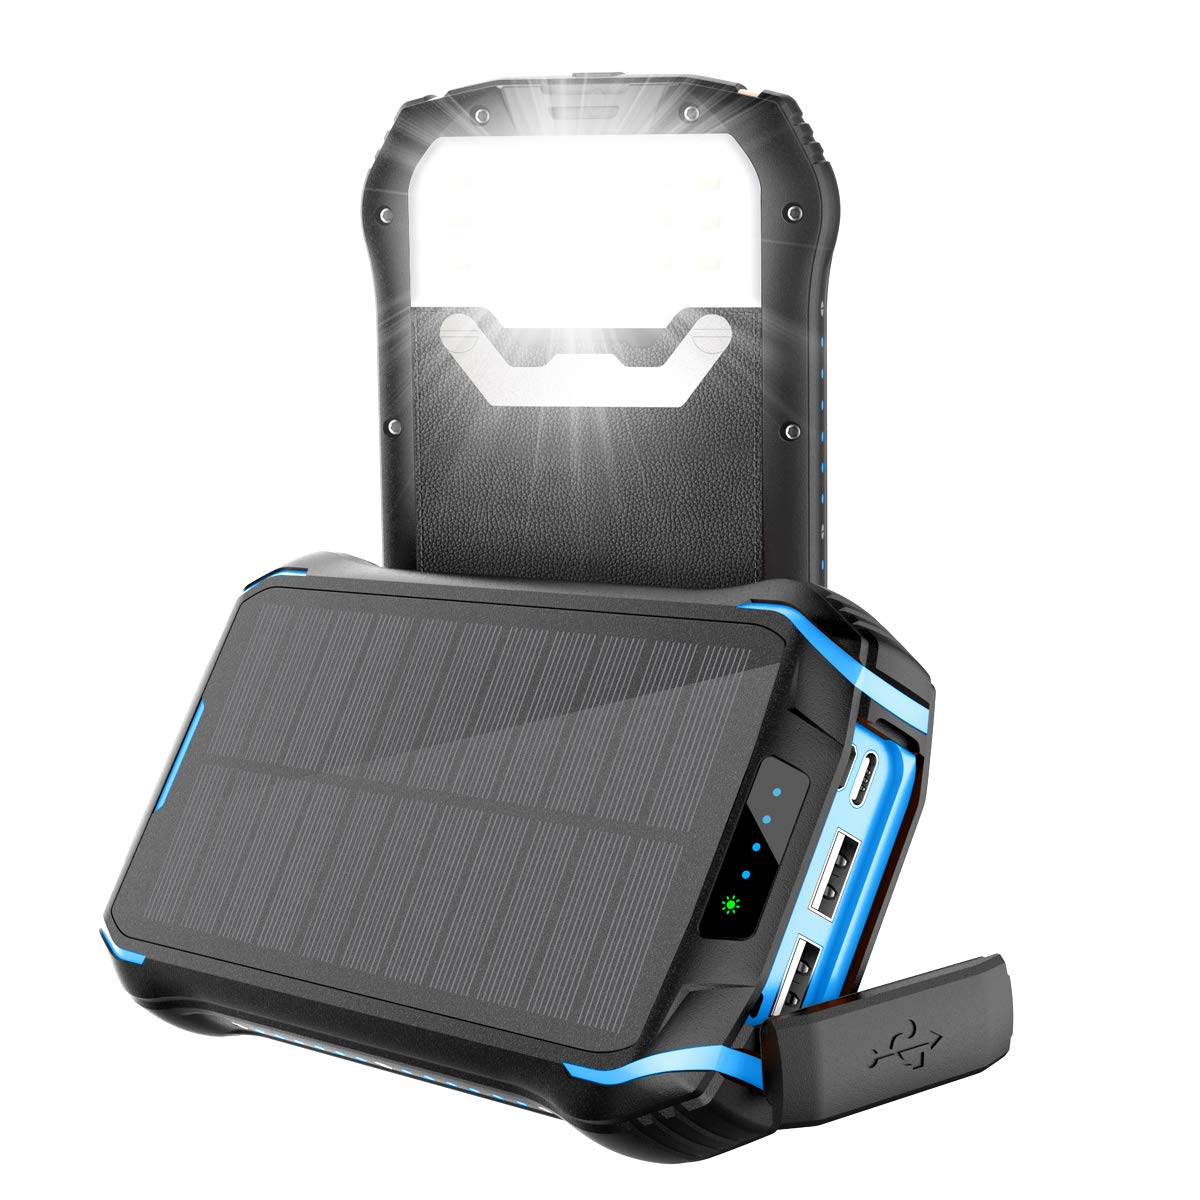 Aonidi Solar Charger 26800mAh Power Bank Portable Charger Battery Pack with 3 Outputs & 2 Inputs(Micro USB & Type-C) High Capacity Backup Battery Compatible Smartphone,Tablet and More by aonidi